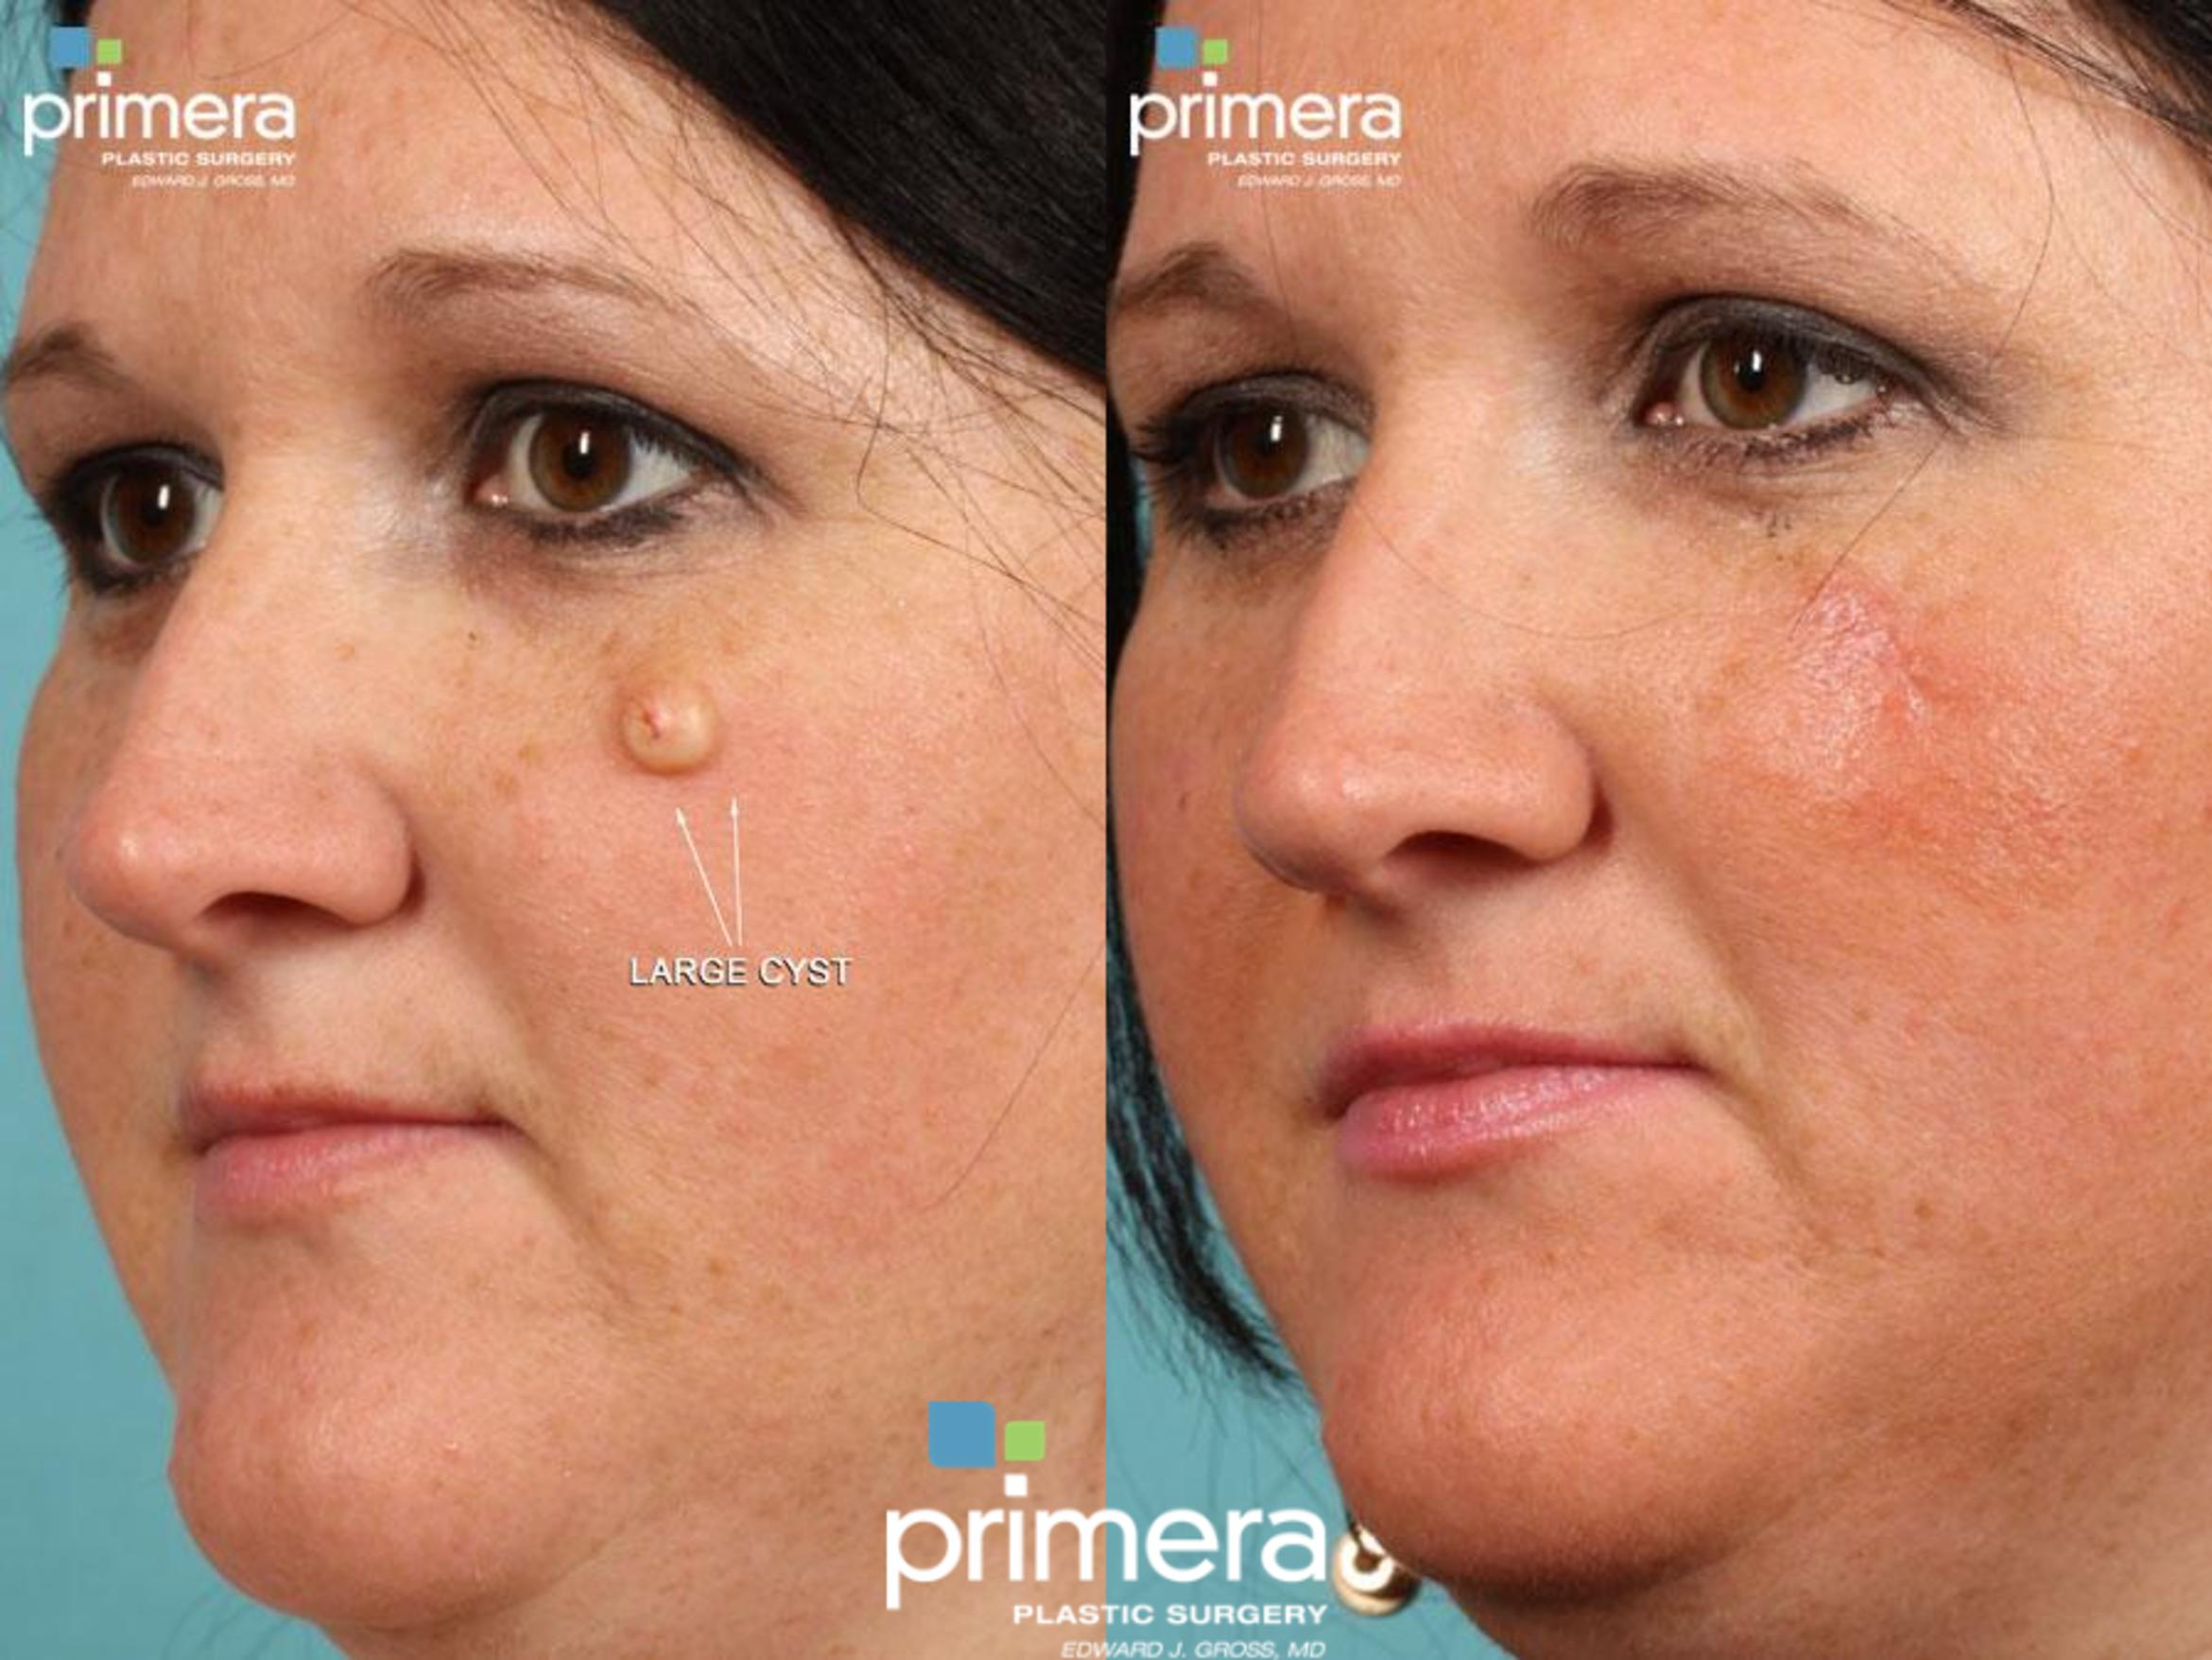 Facial Scarring Before & After Photo | Orlando, Florida | Primera Plastic Surgery